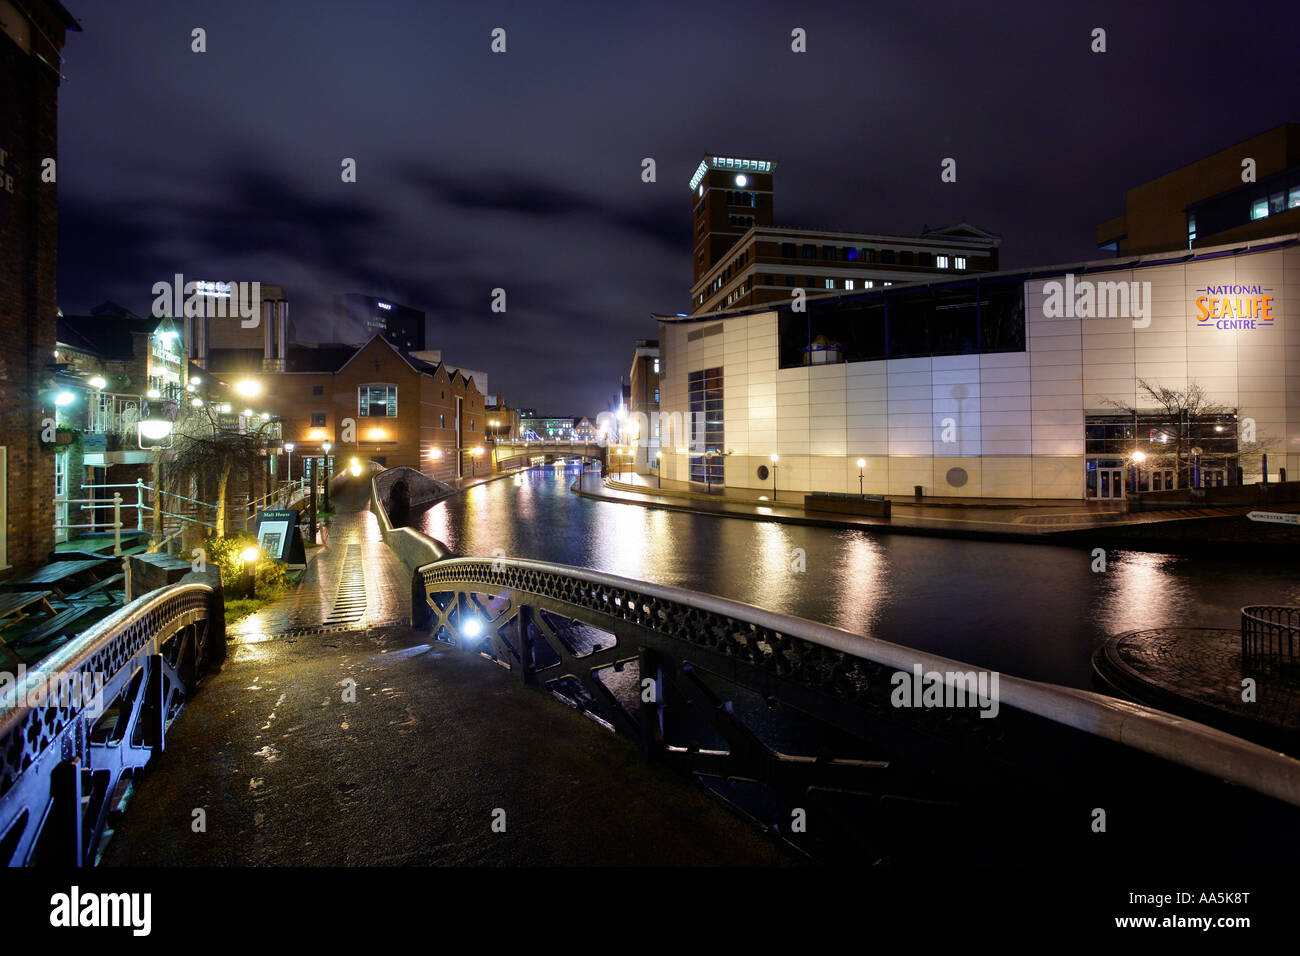 View of the canal area near to Brindleyplace Birmingham England Birmingham  Pictured is the National Sea Life Centre - Stock Image